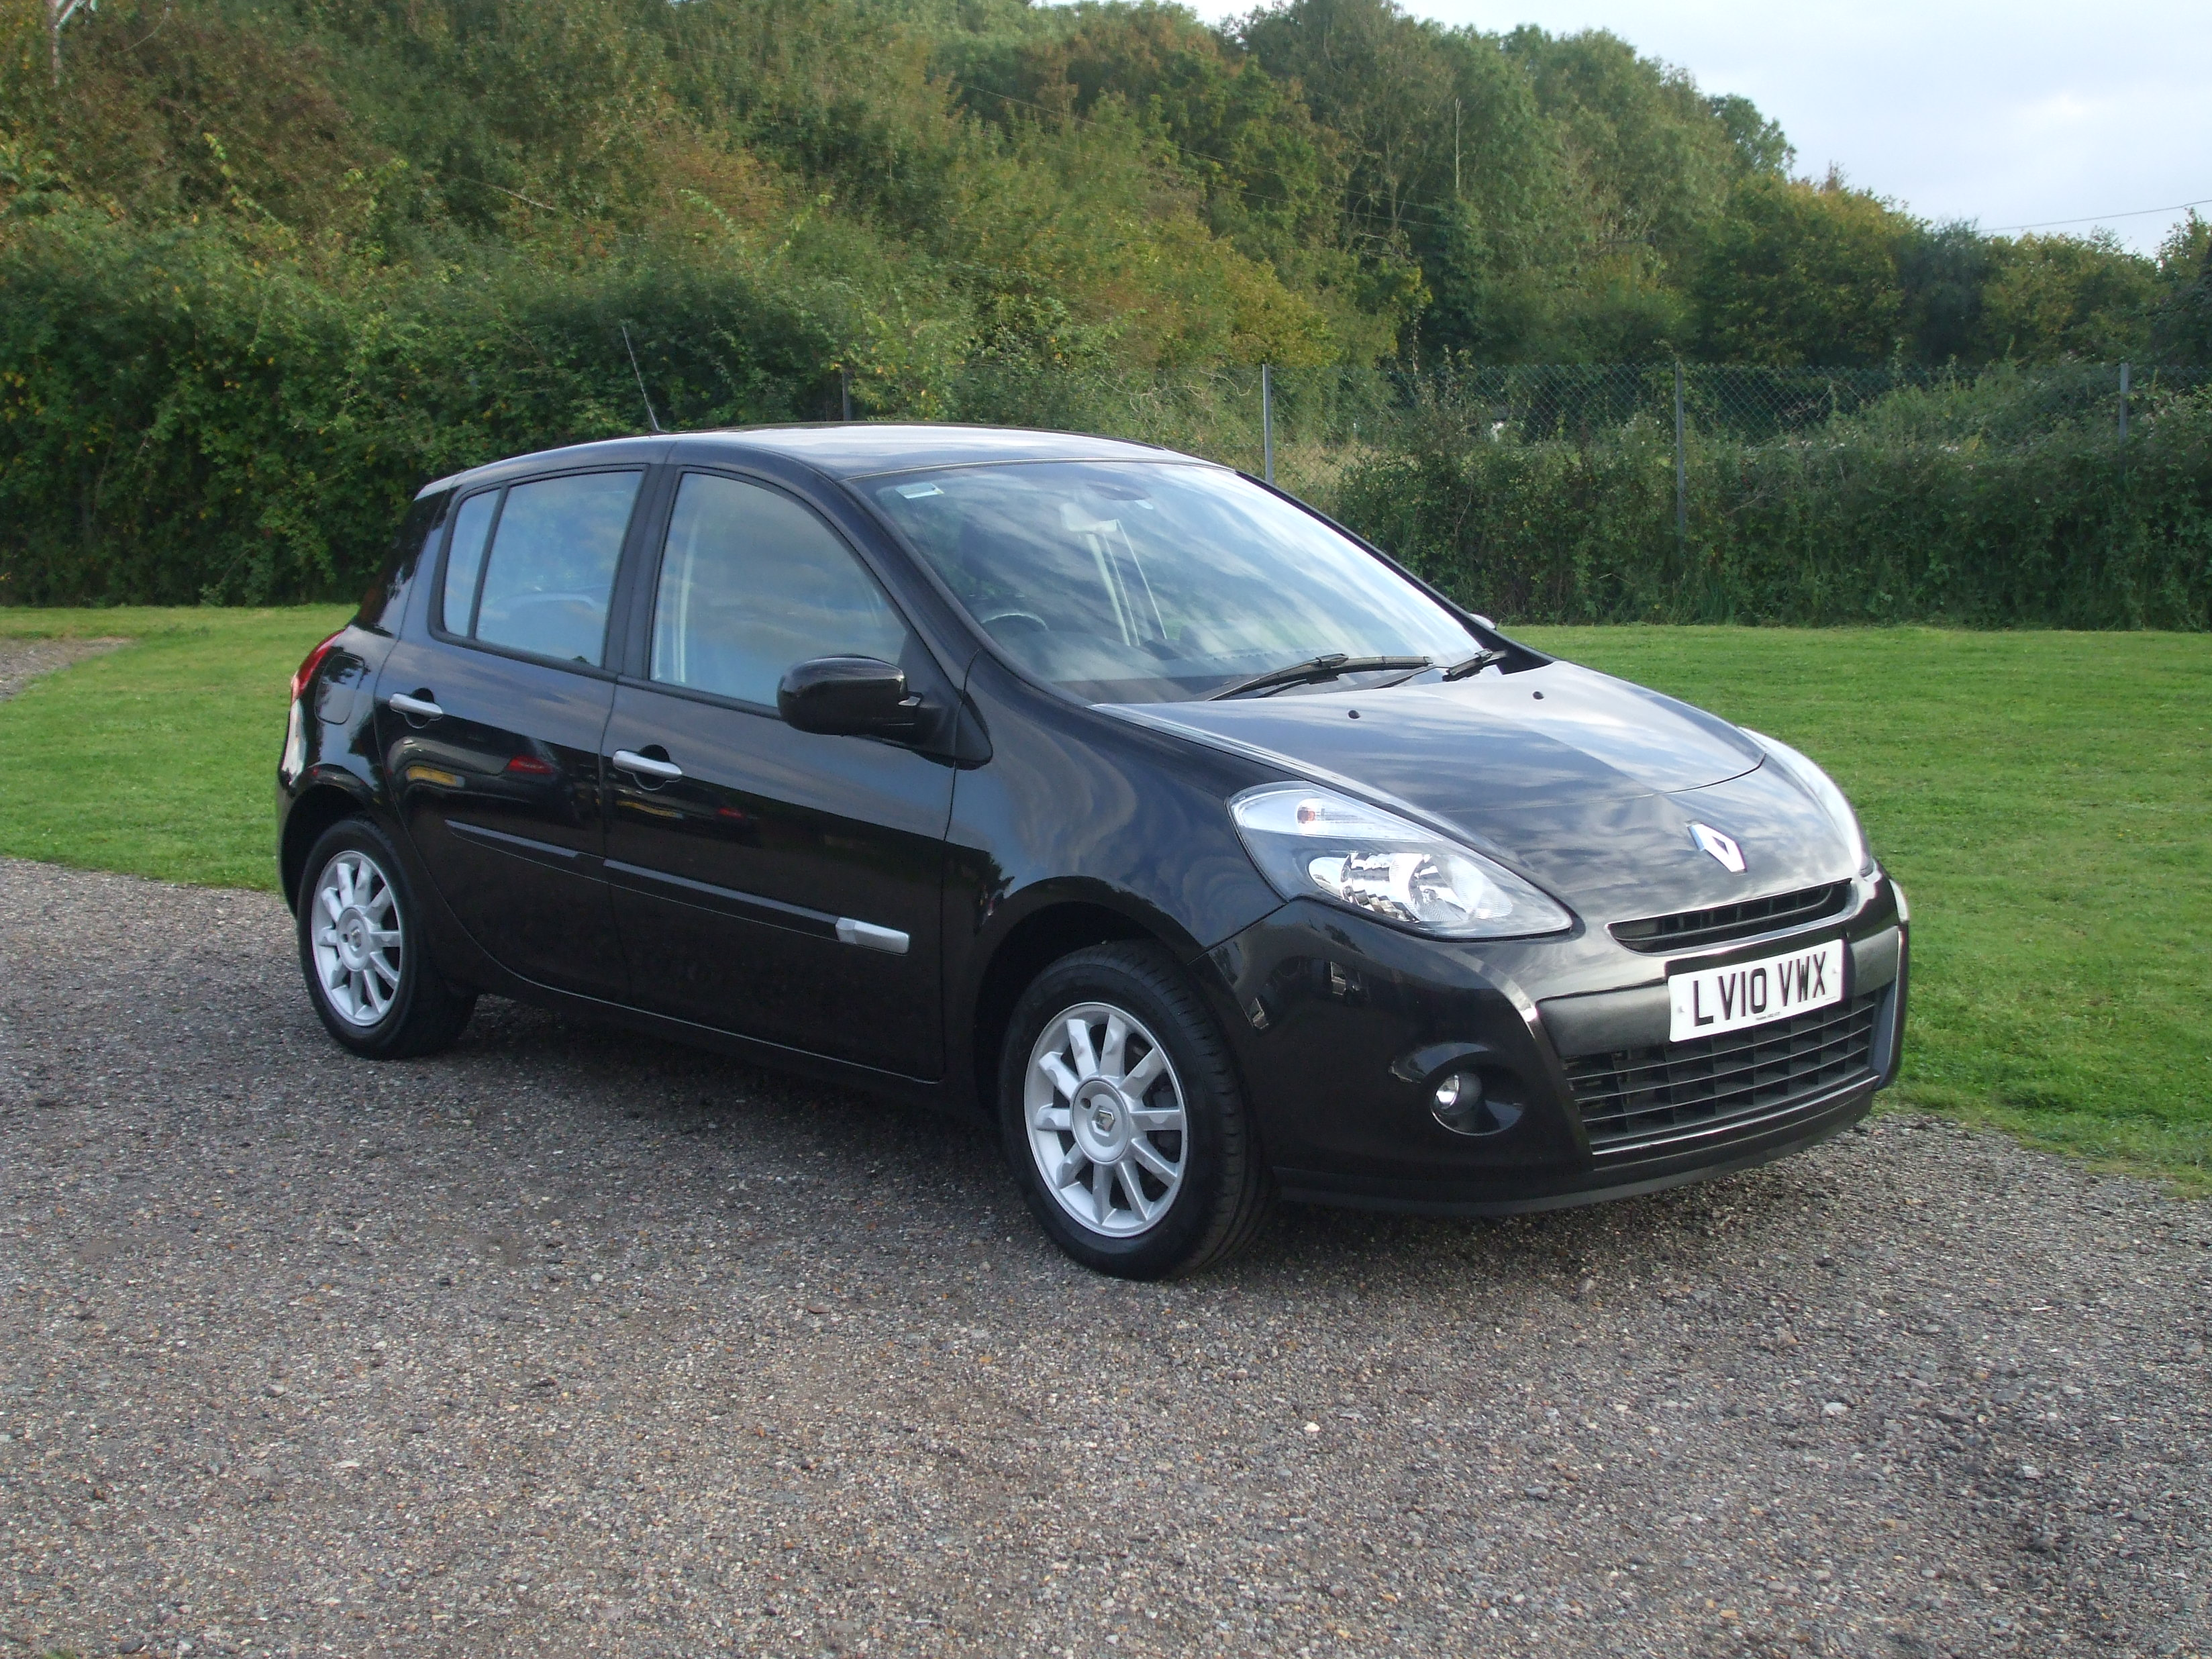 renault clio dynamique tom tom 1 5 dci 10 reg sold ymark vehicle services. Black Bedroom Furniture Sets. Home Design Ideas